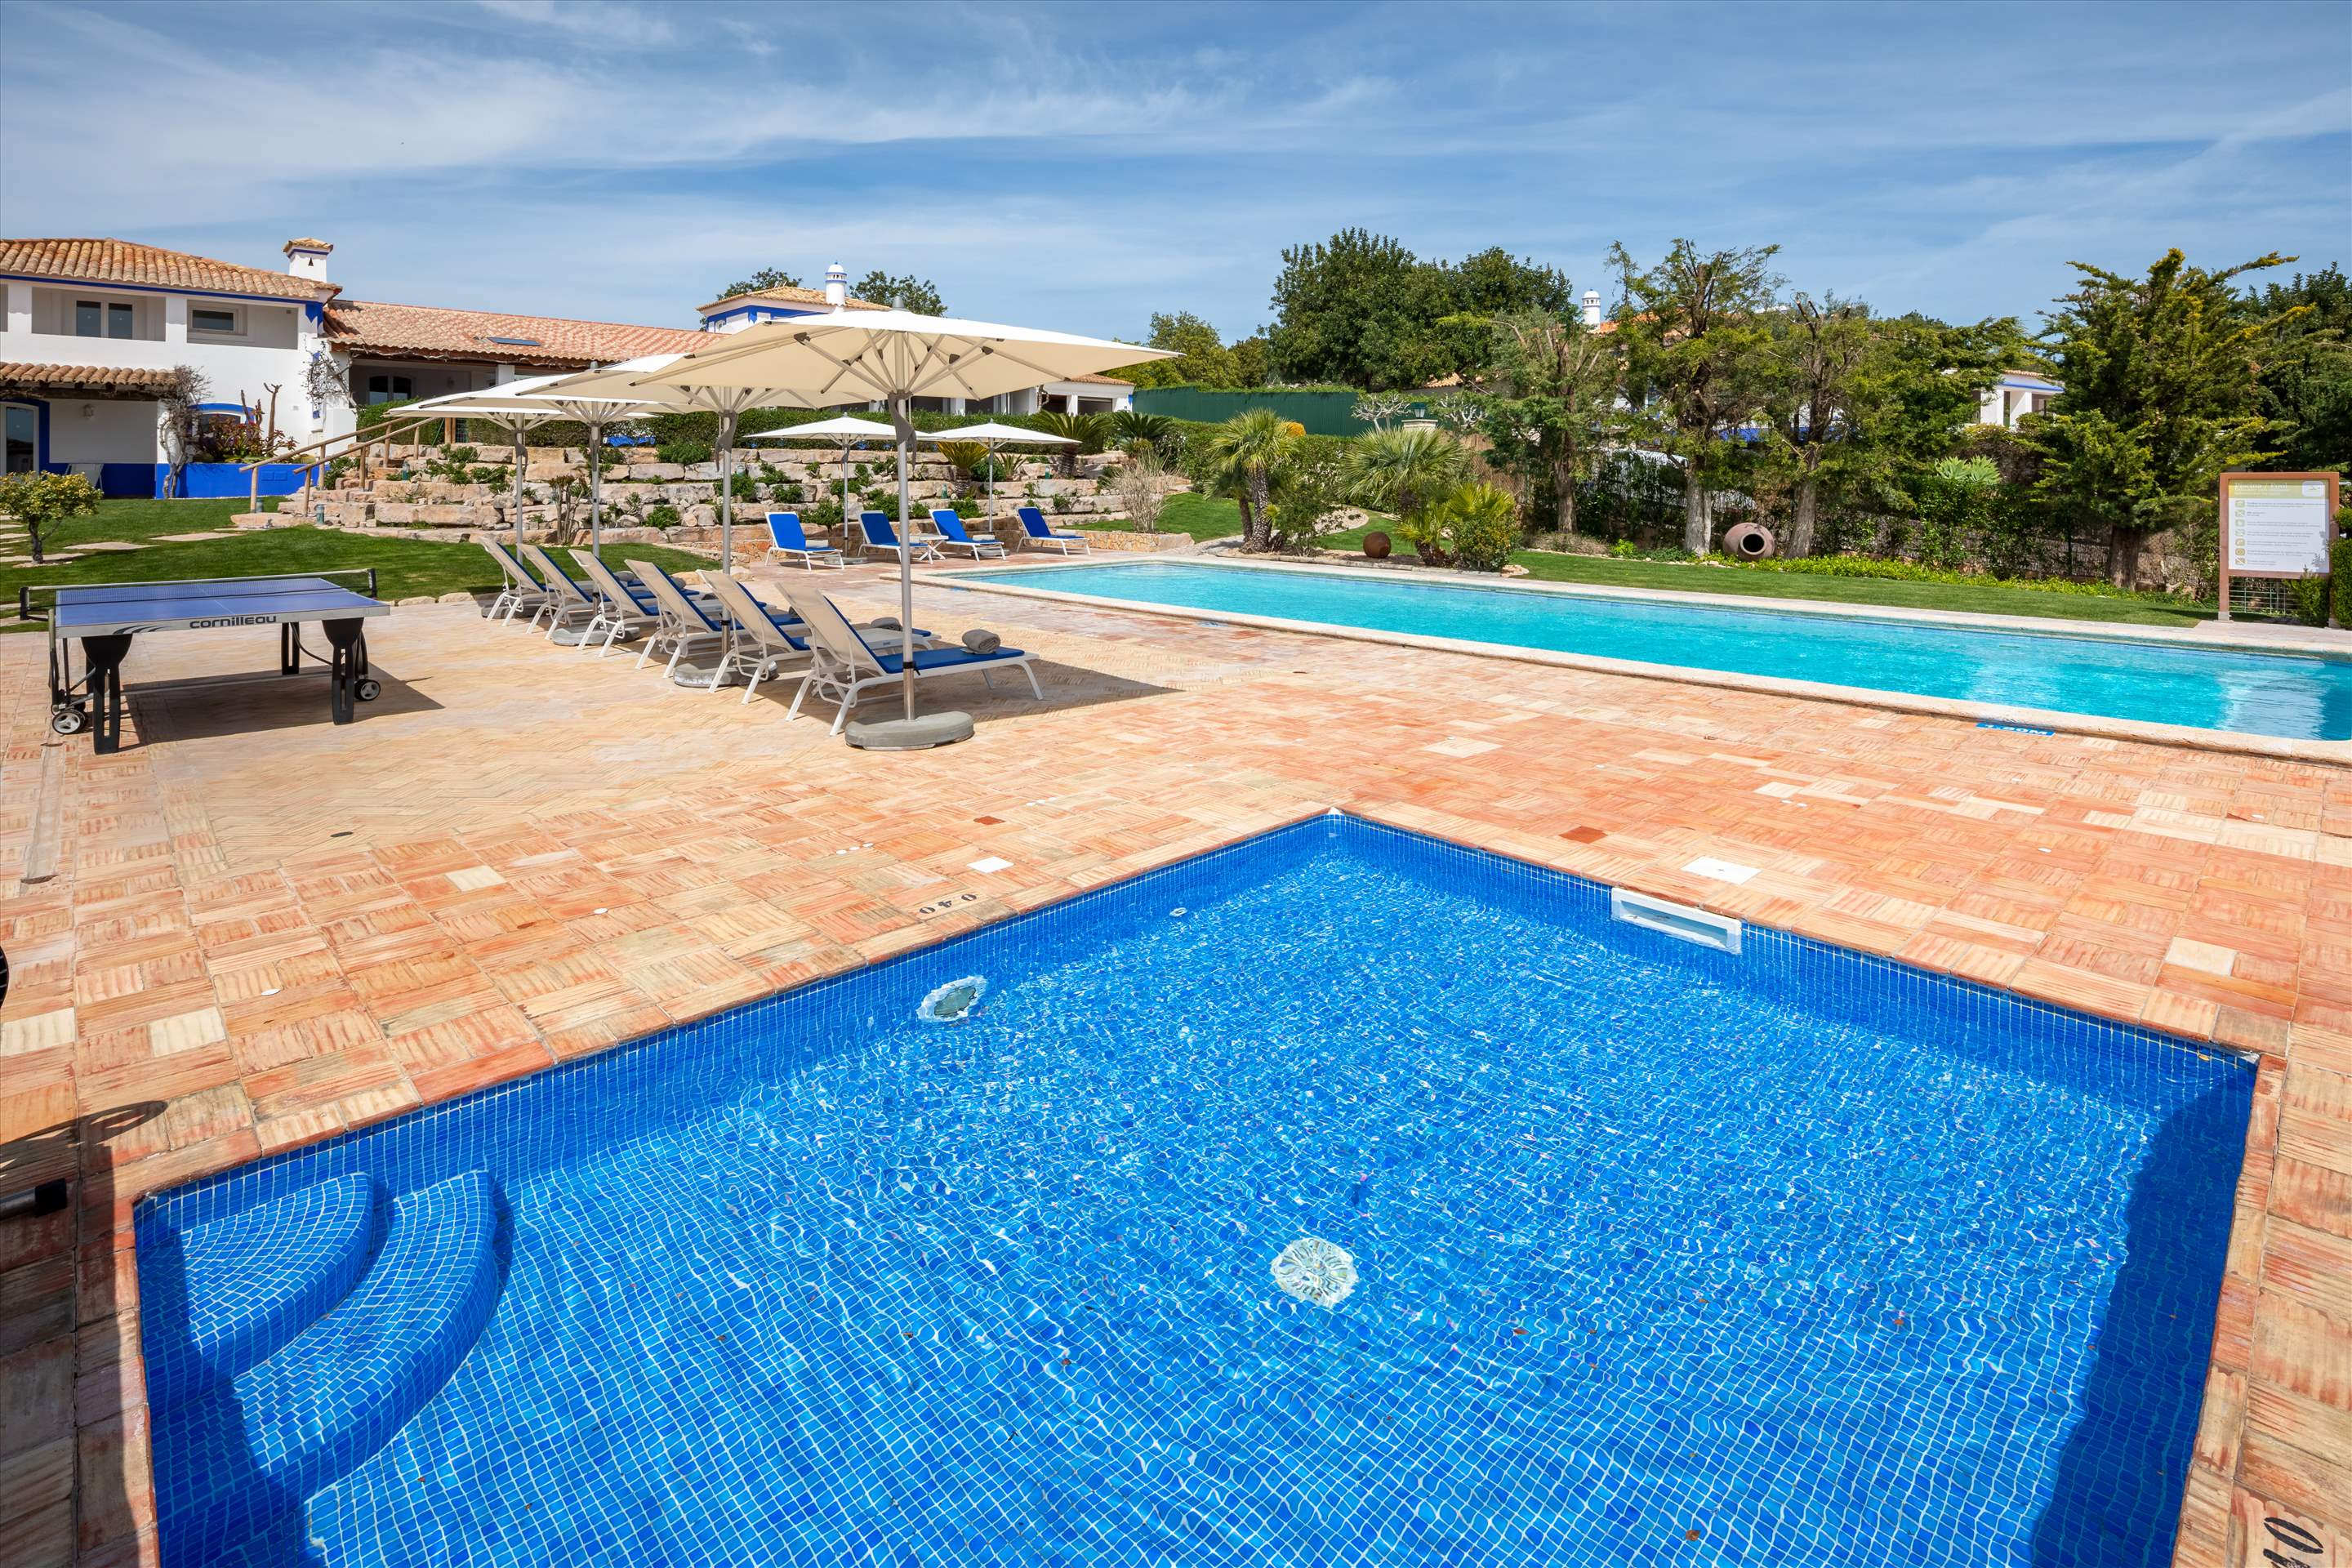 Casa da Montanha, 13-14 persons, 8 bedroom villa in Vilamoura Area, Algarve Photo #14